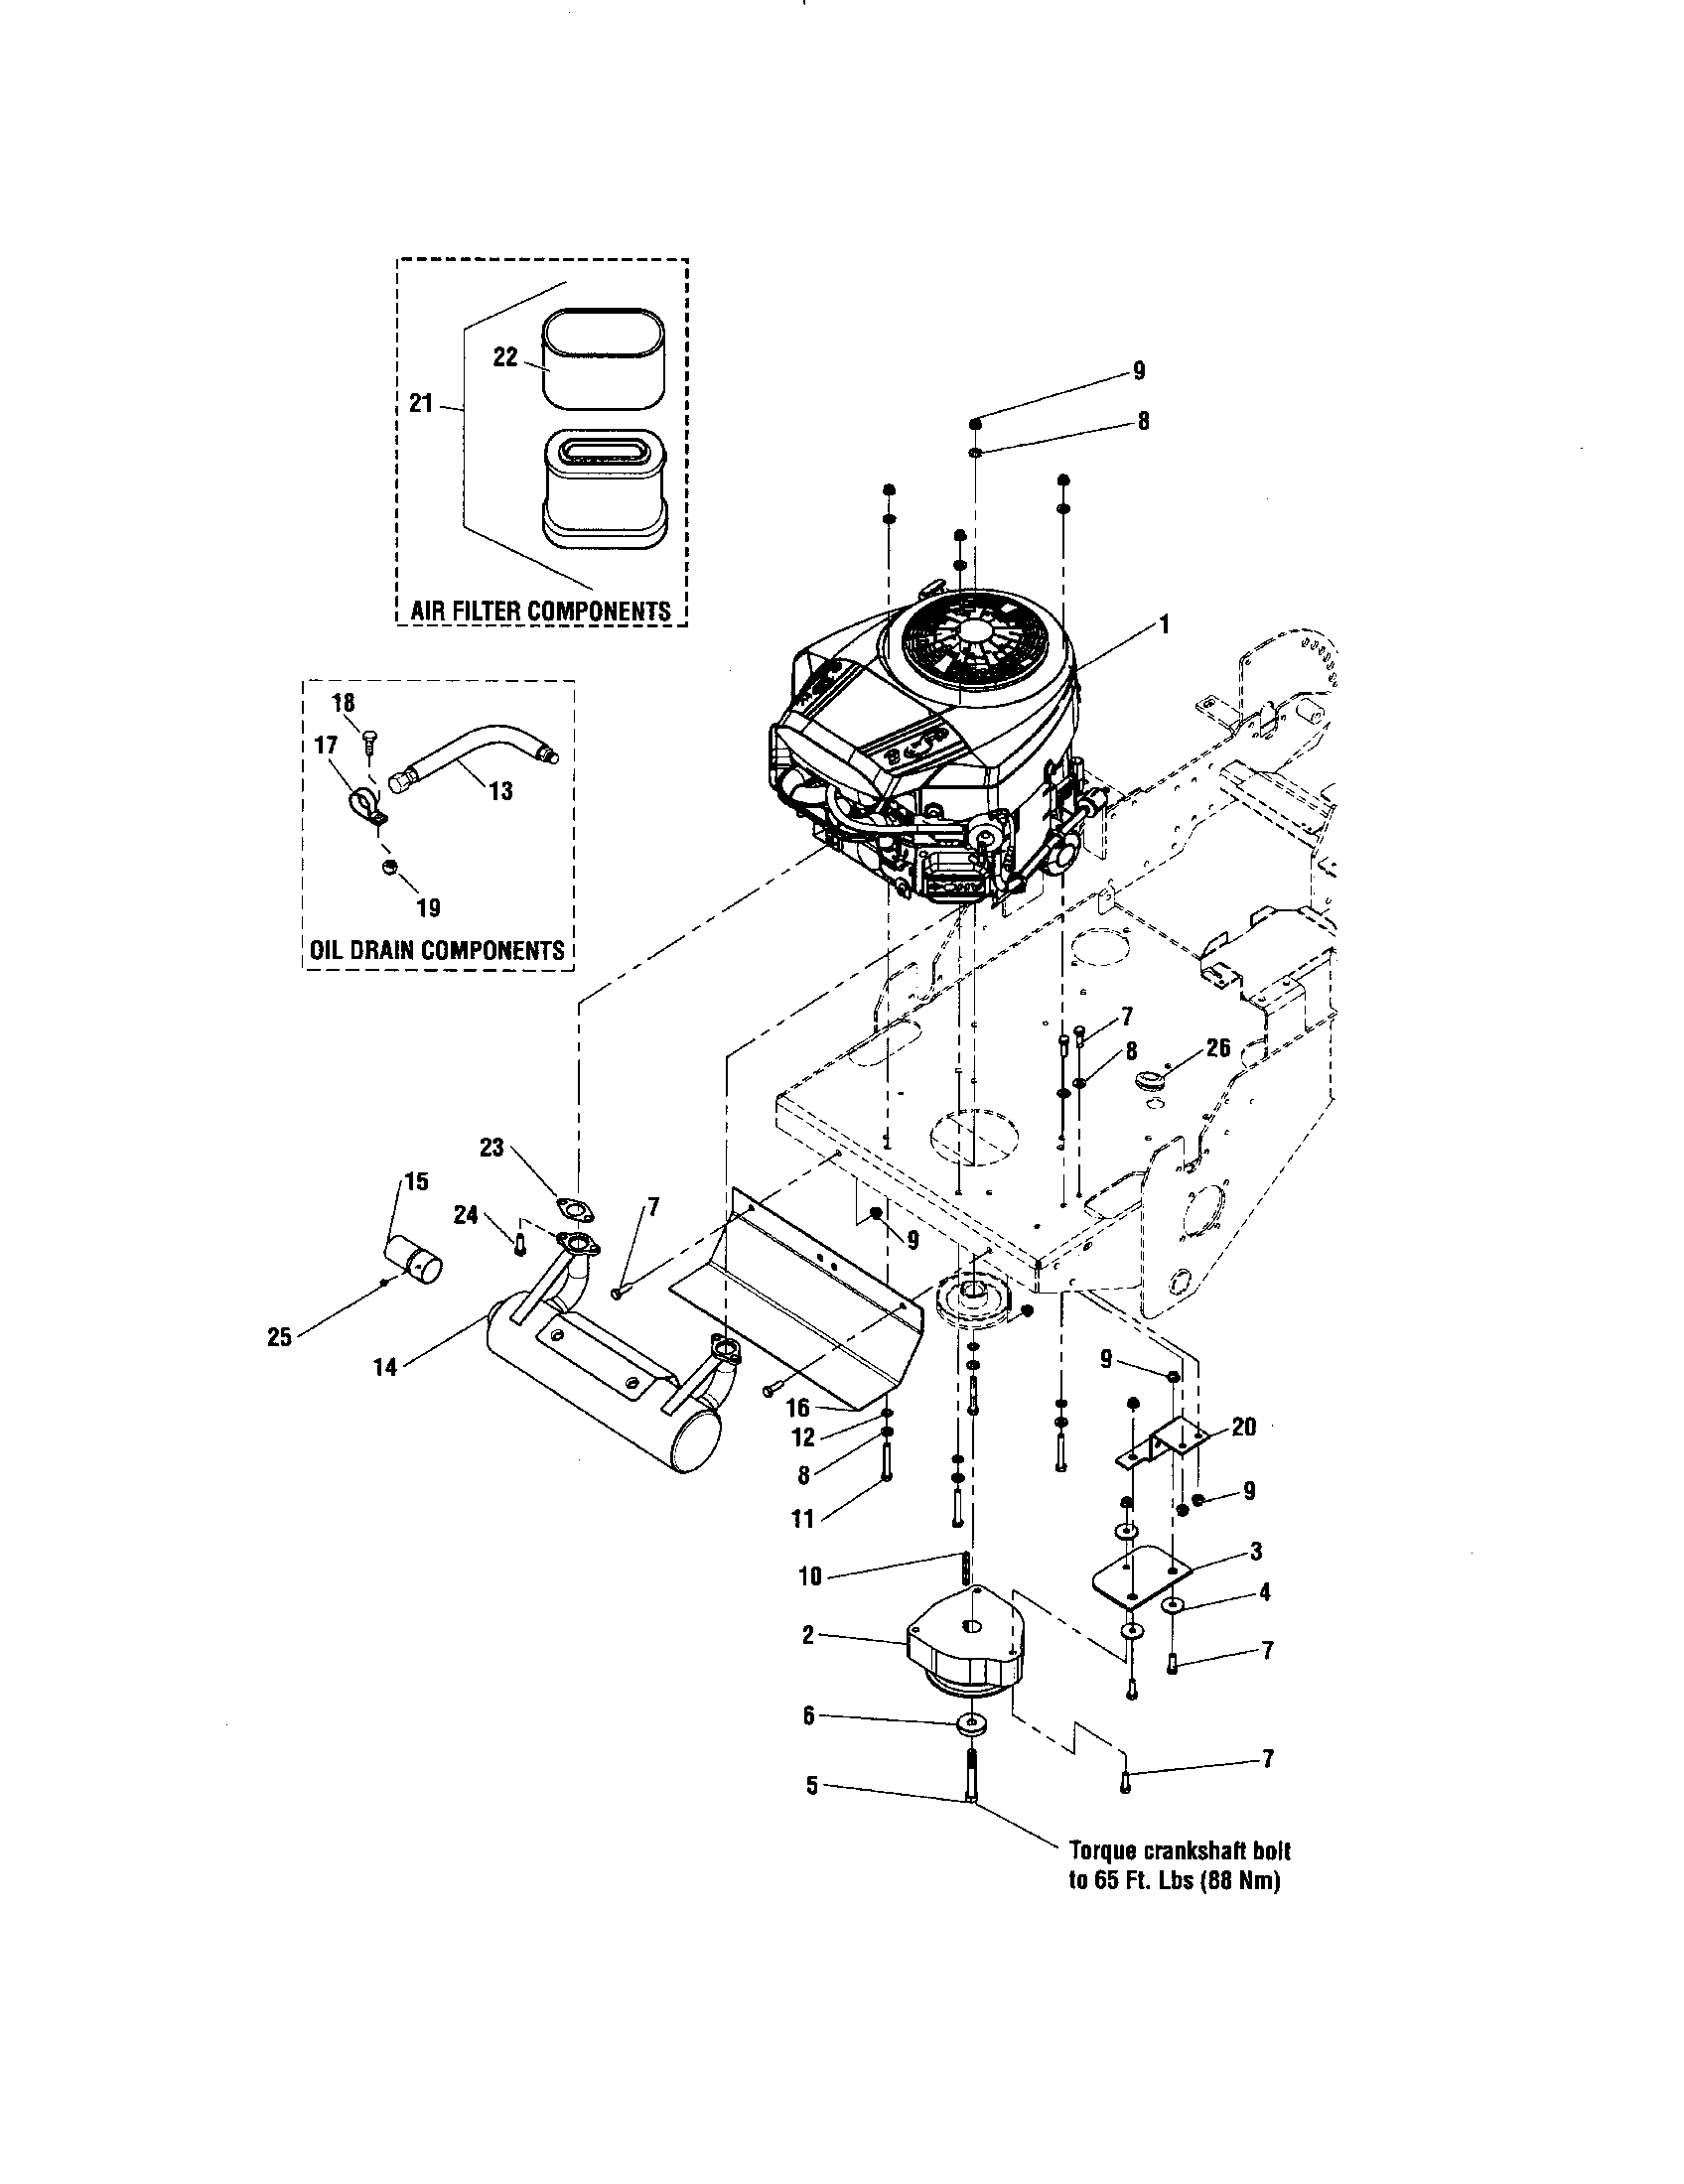 hight resolution of fuel system parts diagram parts list for model 19fb00100041 briggs fuel pump carburetor diagram and parts list for briggs stratton all